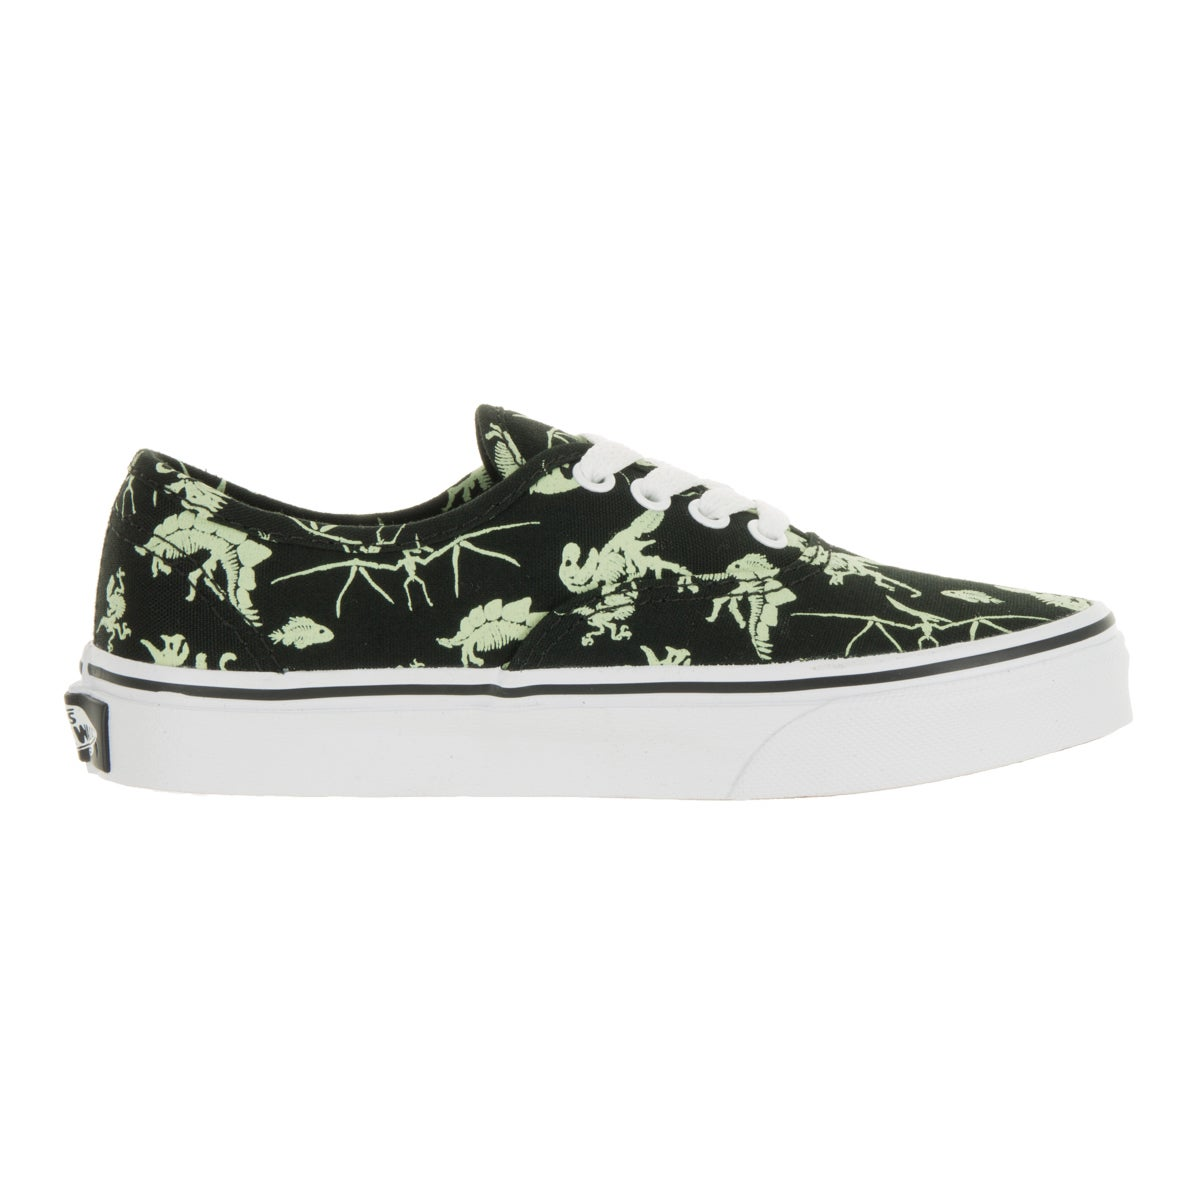 3bfcf0be56 Shop Vans Kids Authentic Dinosaur Black Glow In The Dark Skate Shoe - Free  Shipping On Orders Over  45 - Overstock - 13394039